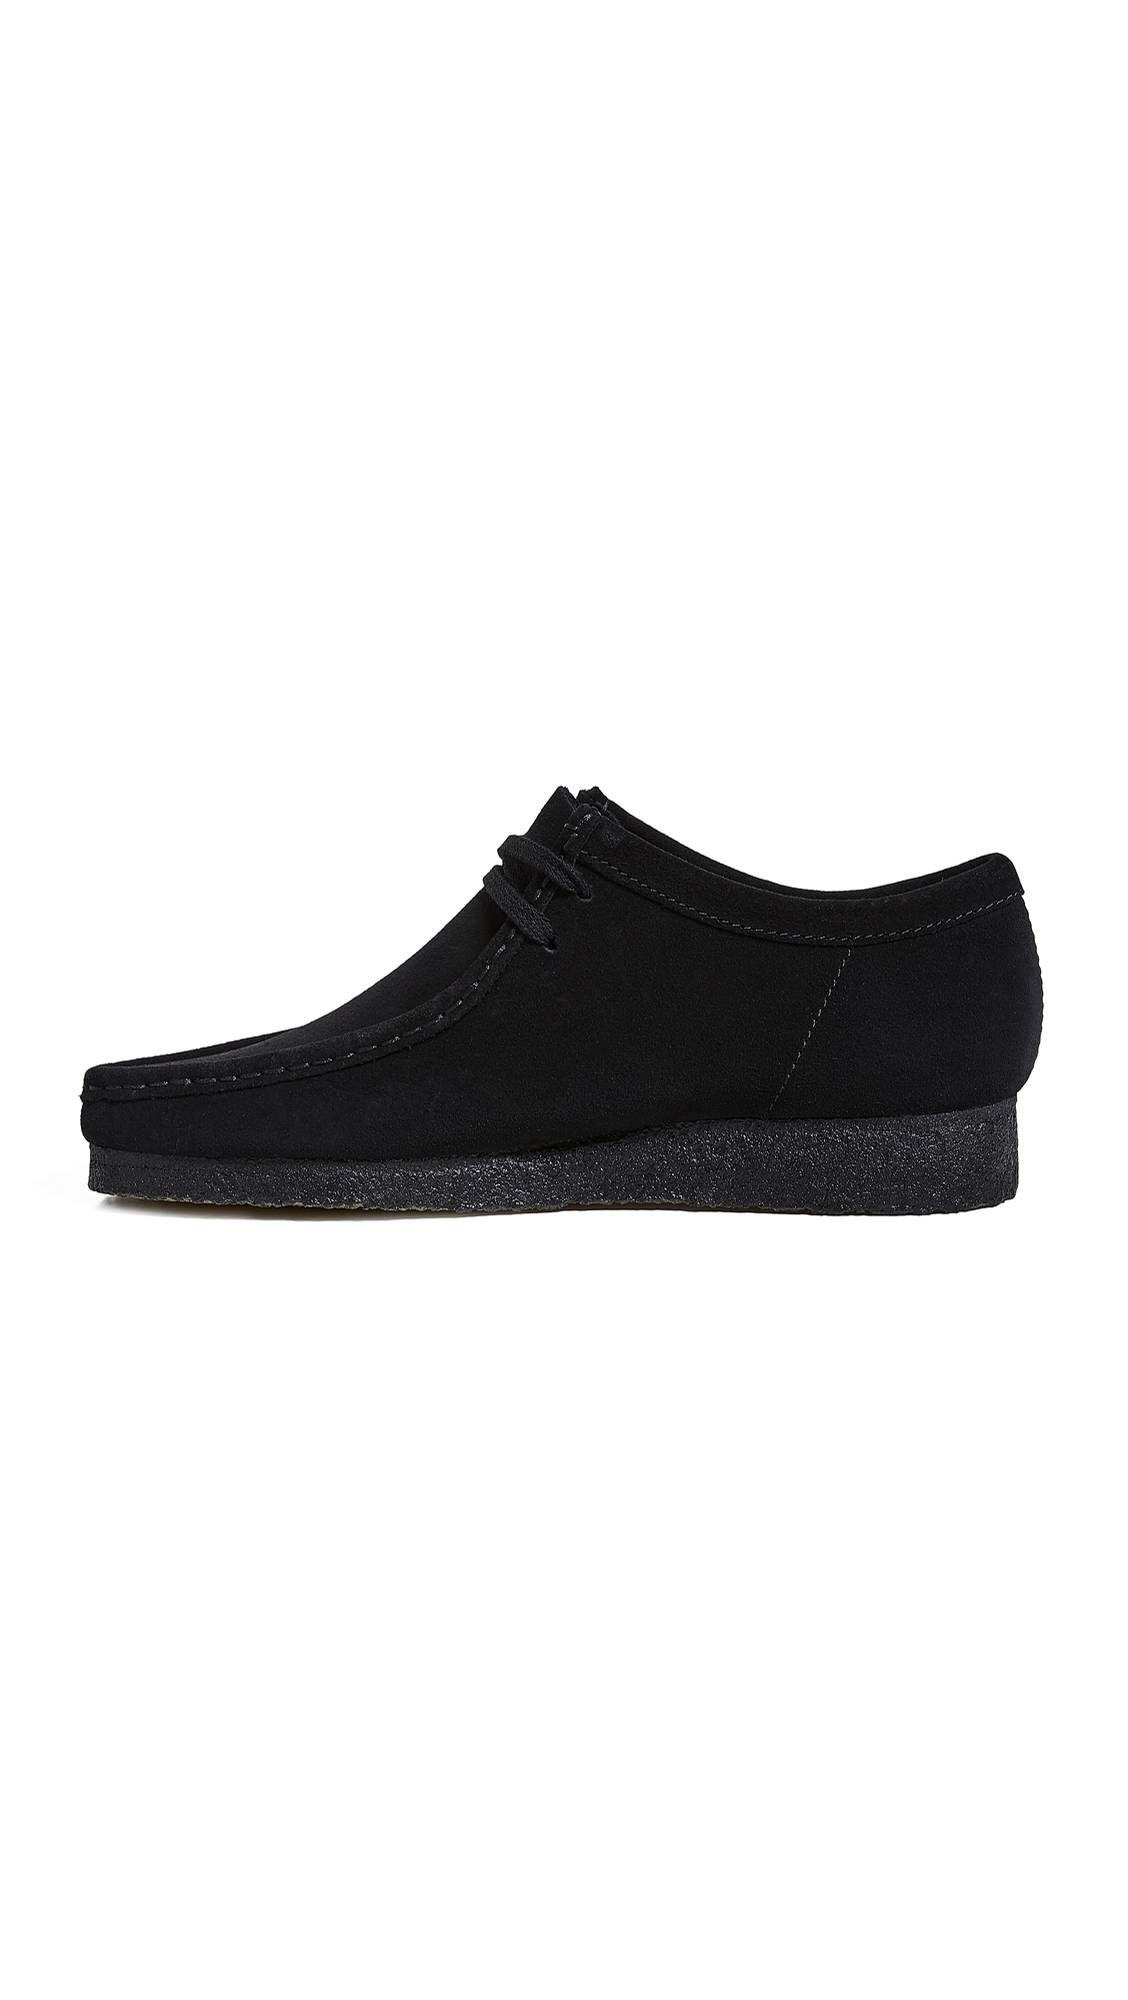 Clarks Suede Wallabee Shoes - Black - Size: 8.5